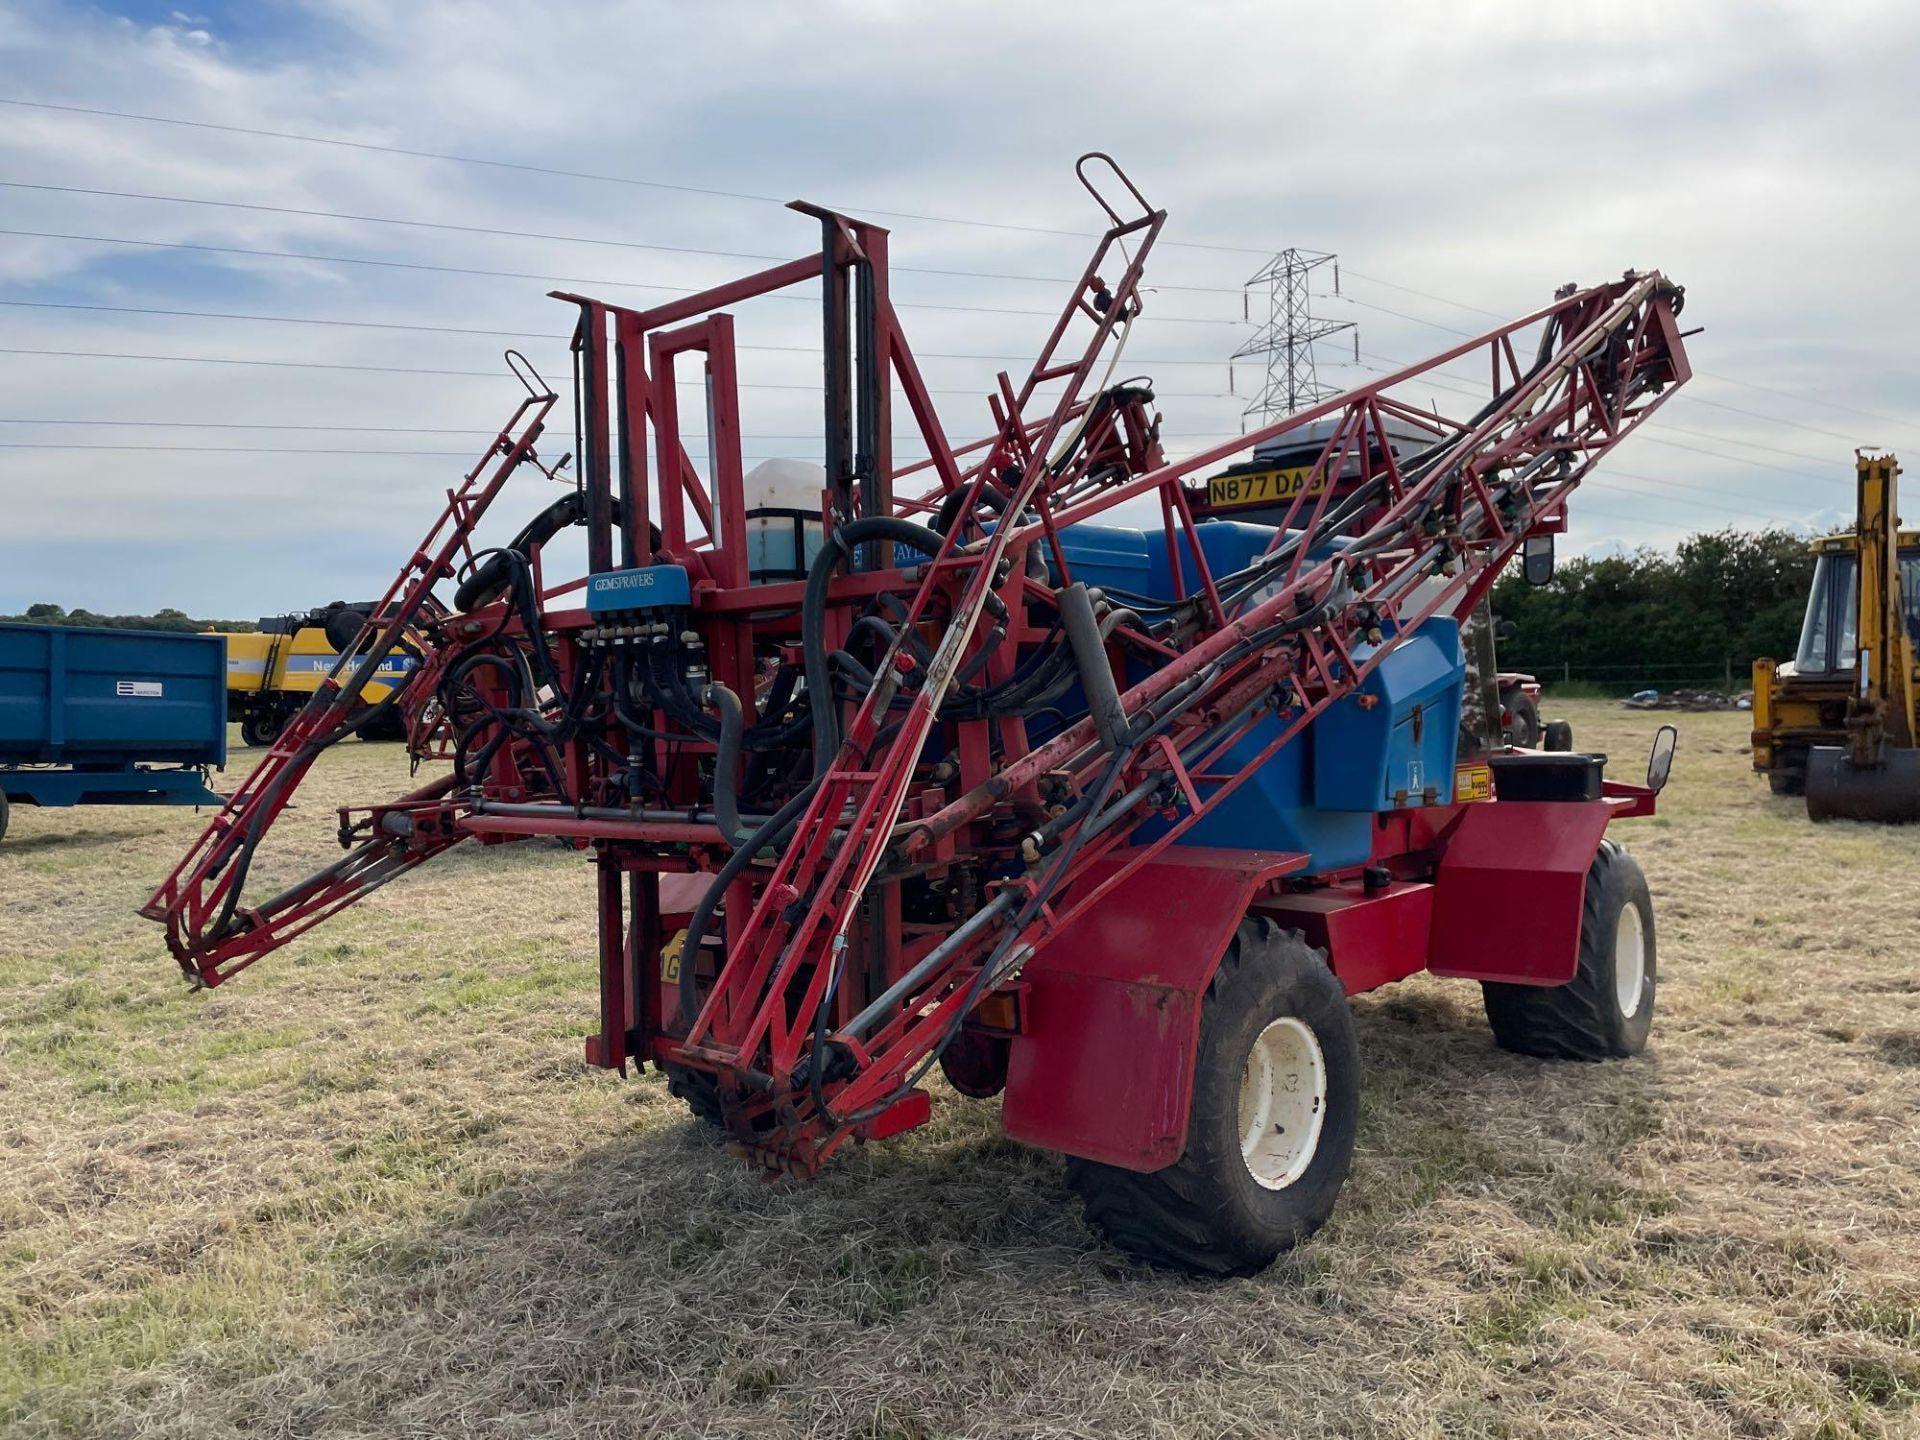 1995 Frazier Agri-Buggy SD with GEM 24m self propelled sprayer, 1500l tank on 38x20.00-16 wheels and - Image 26 of 27